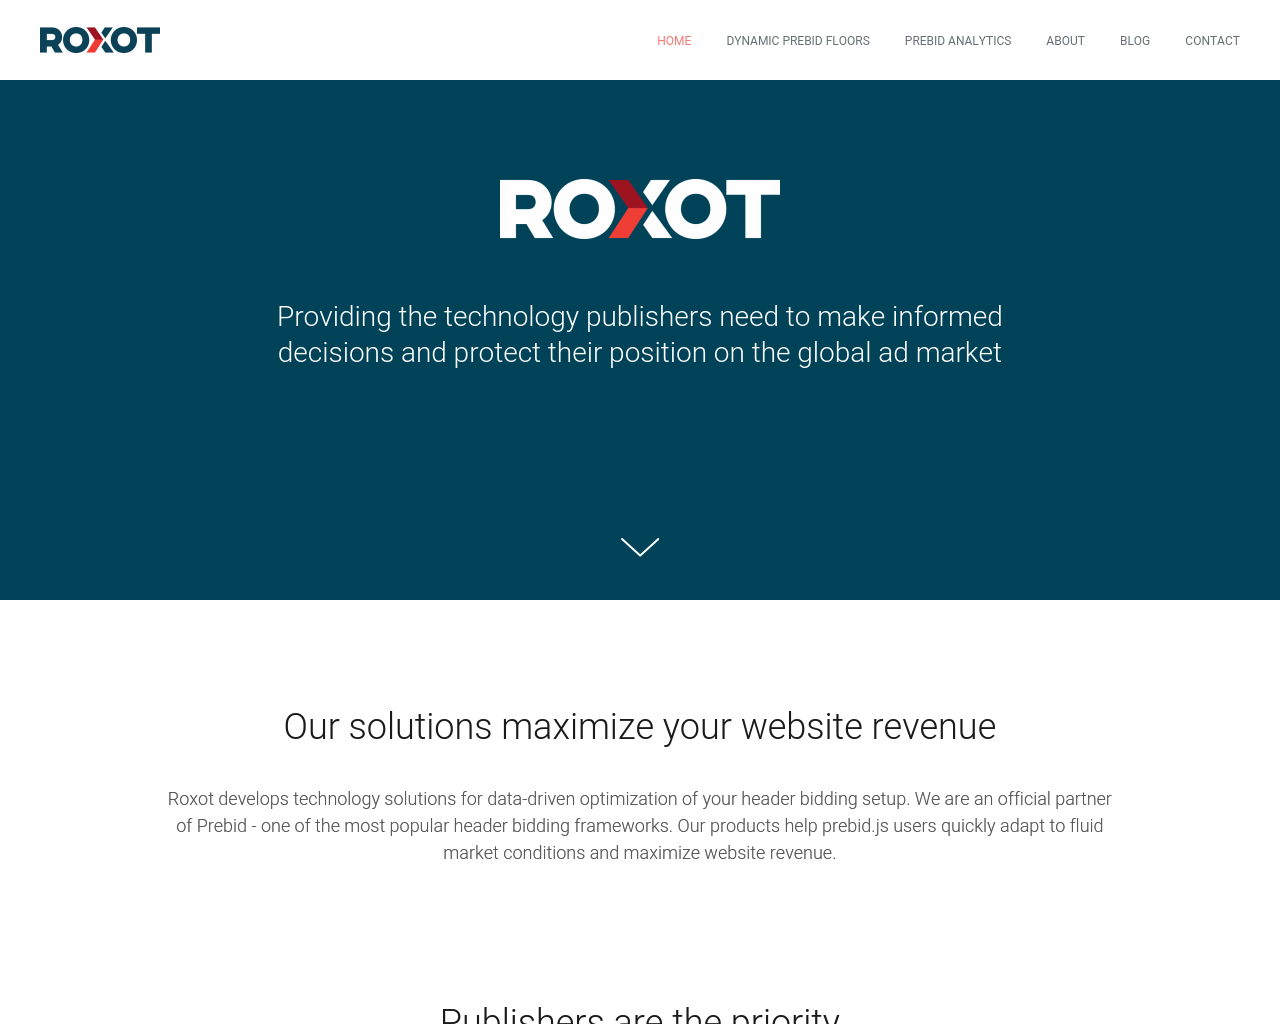 Roxot-Advertising-Reviews-Pricing